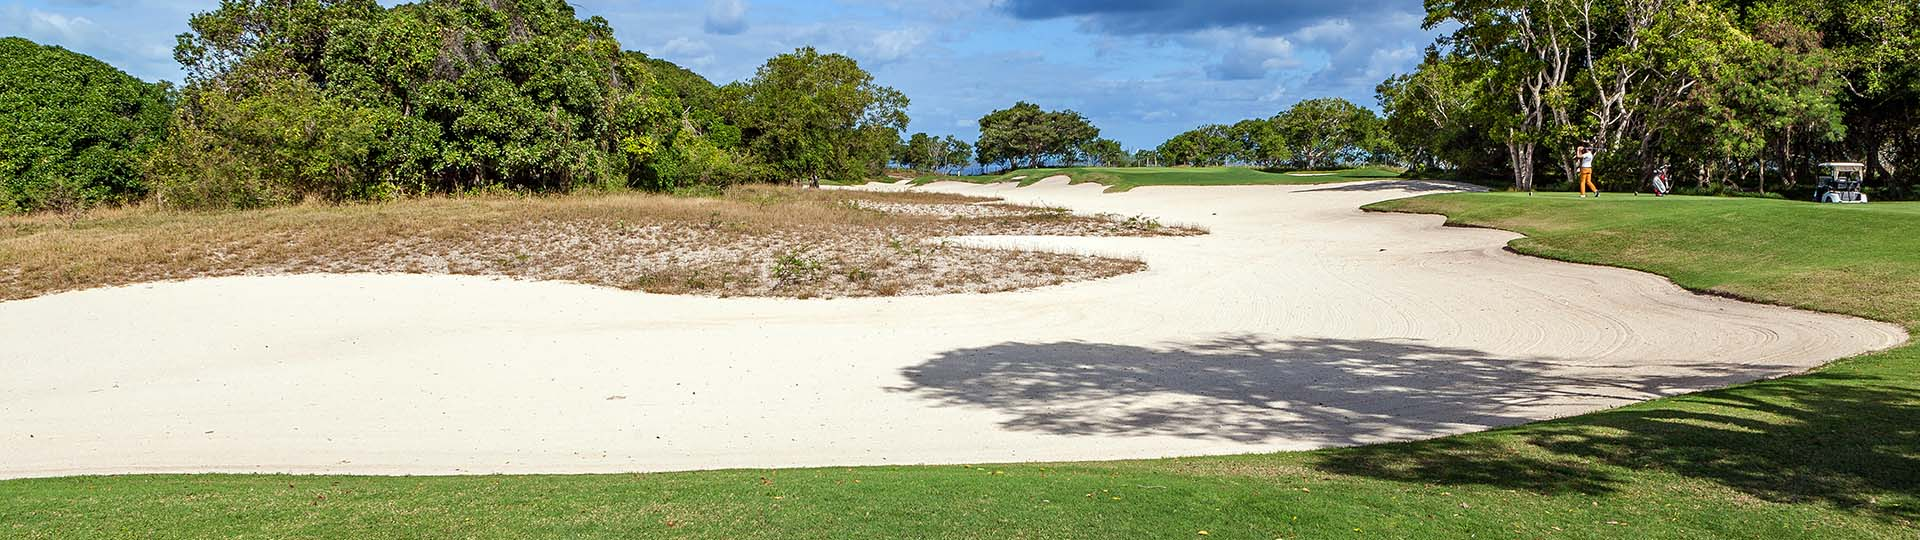 Exclusiv golf deva, New Caledonia